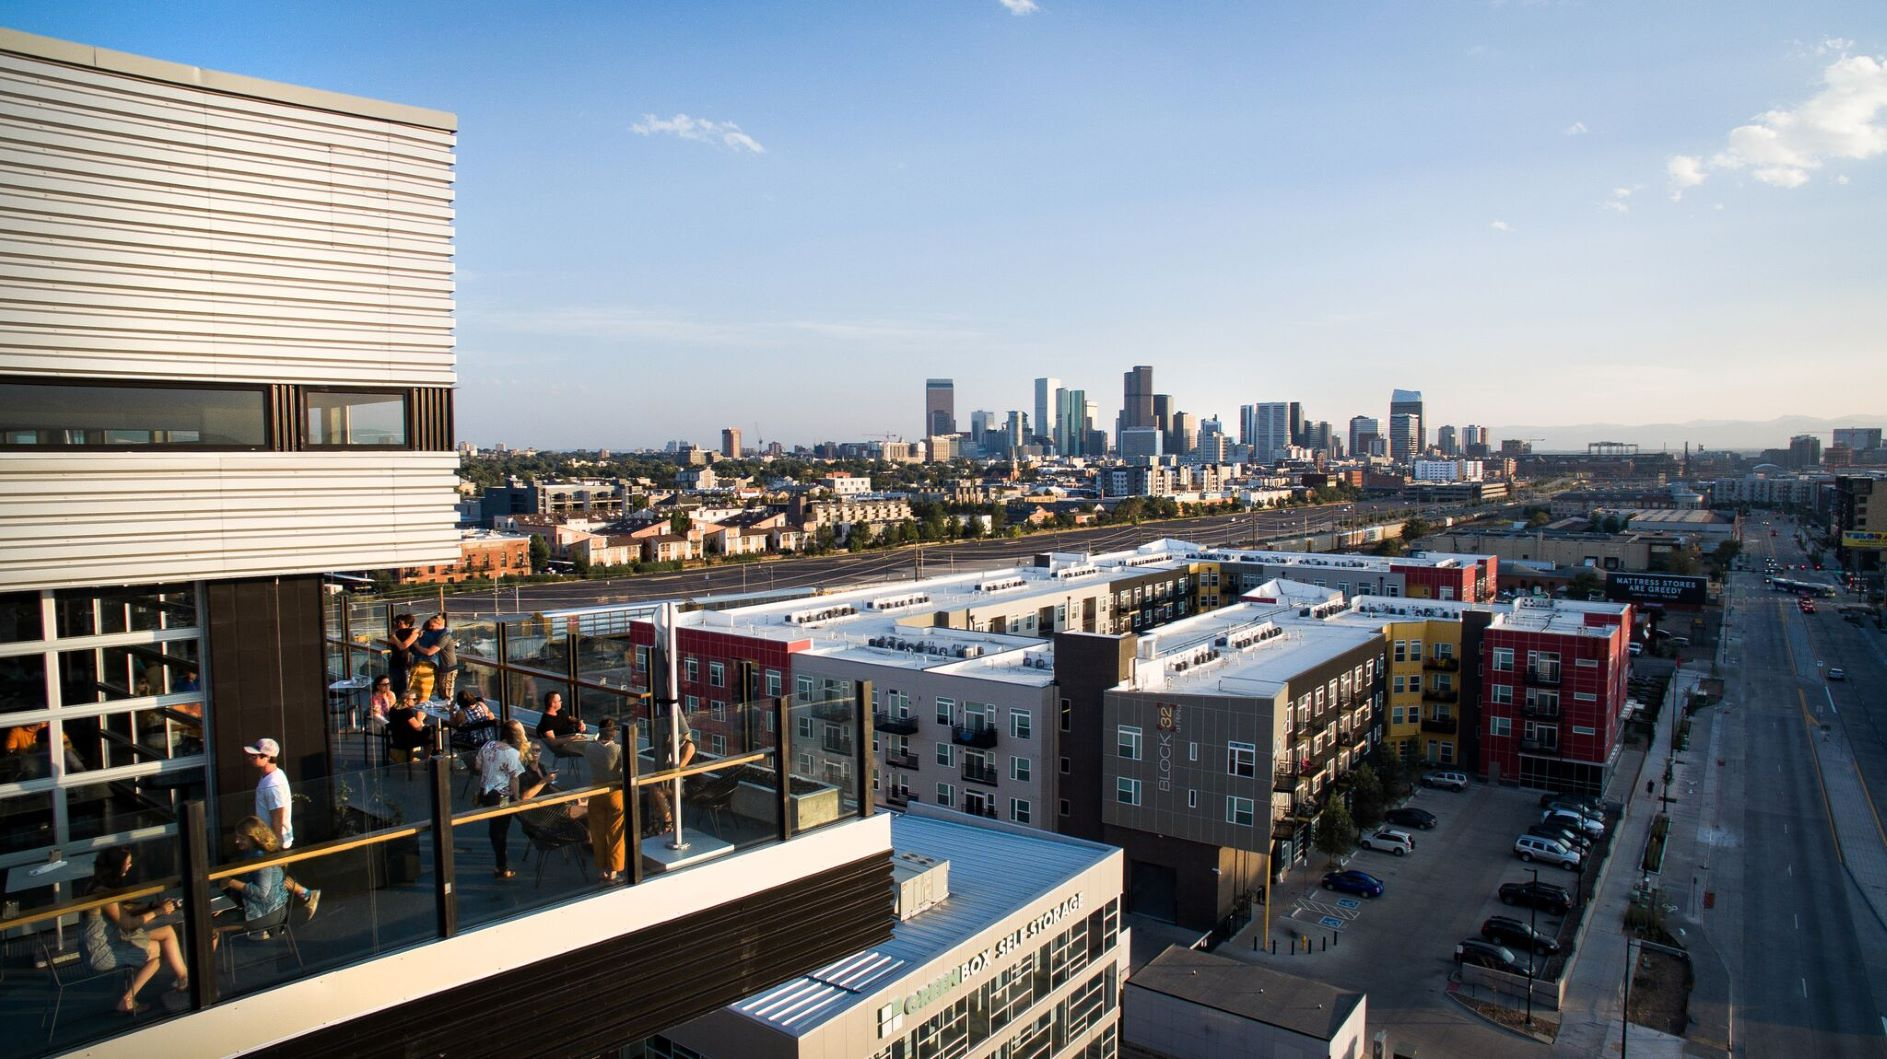 Top 10 Rooftop Bars For Stunning Skyline And Mountain Views In Denver